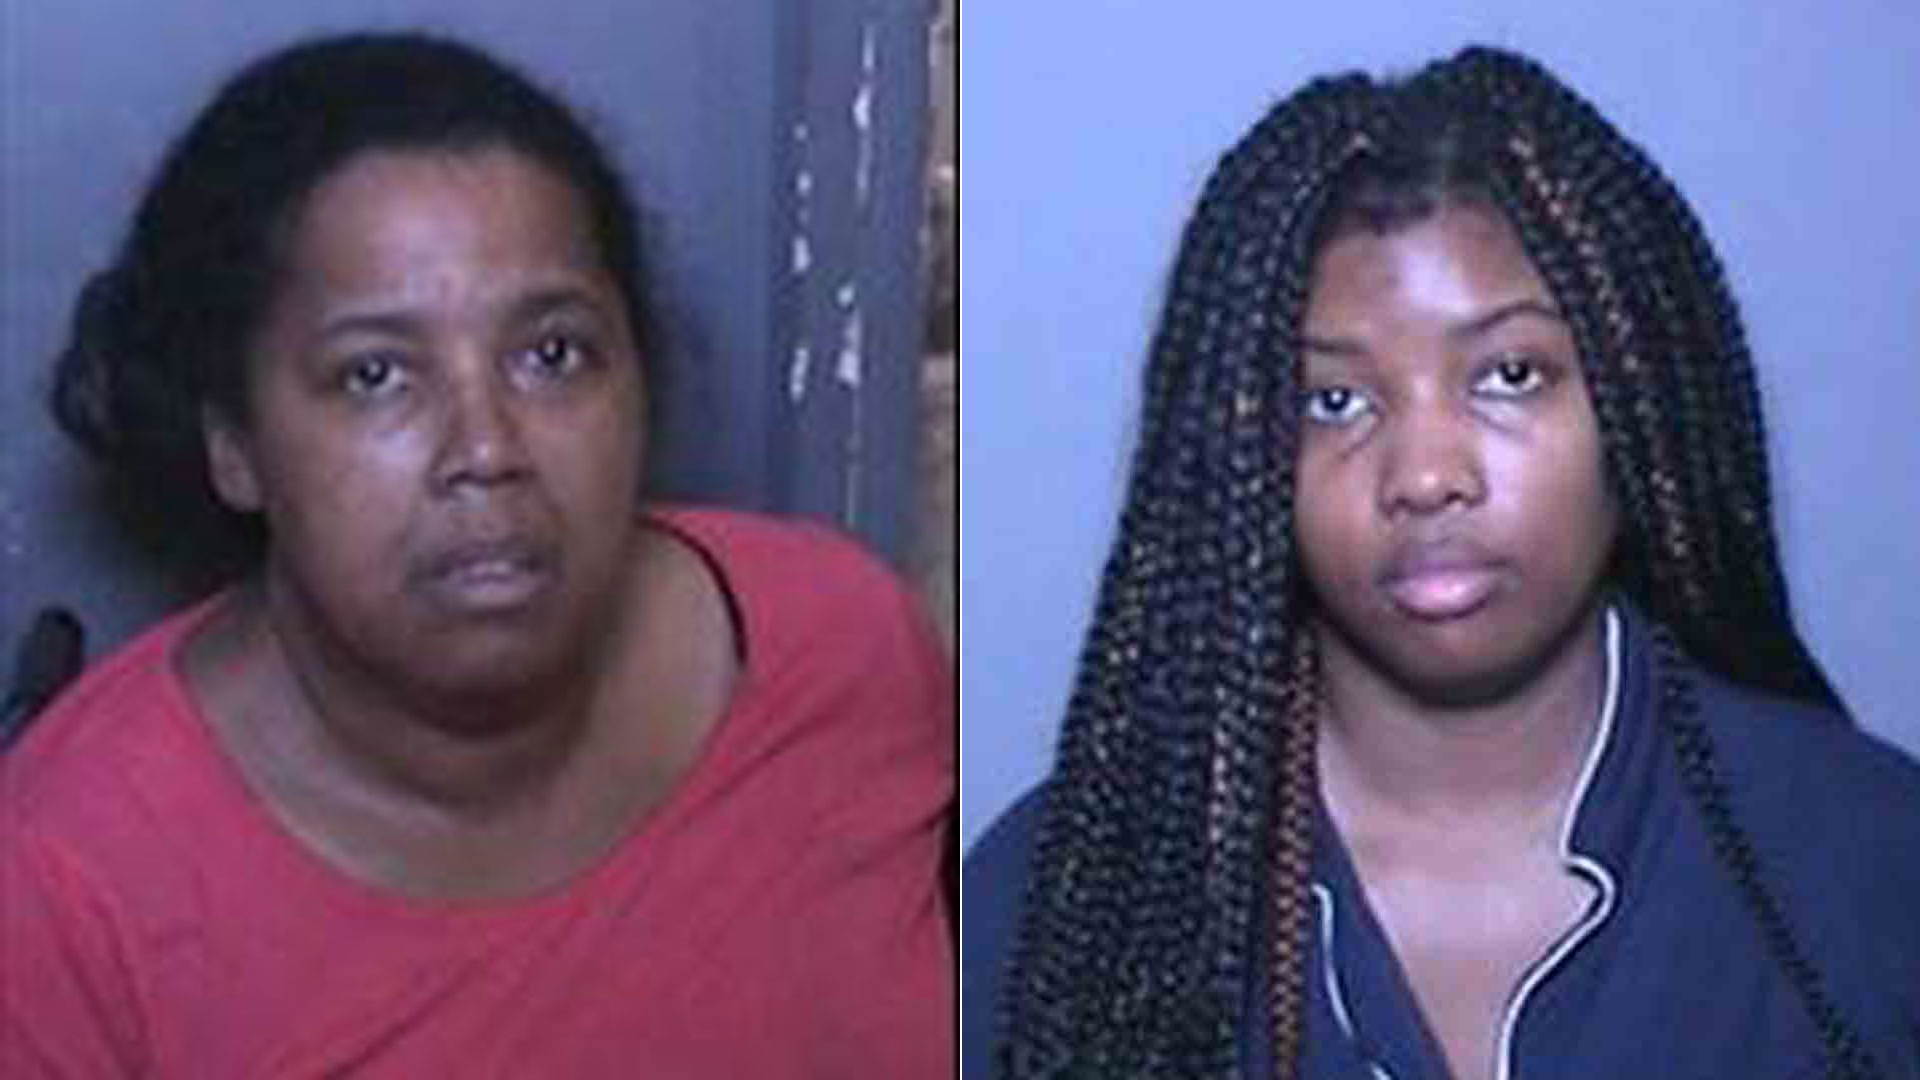 Errica Mickens left, and Brittany Mickens, right are seen in photos released by the Orange County District Attorney's Office.